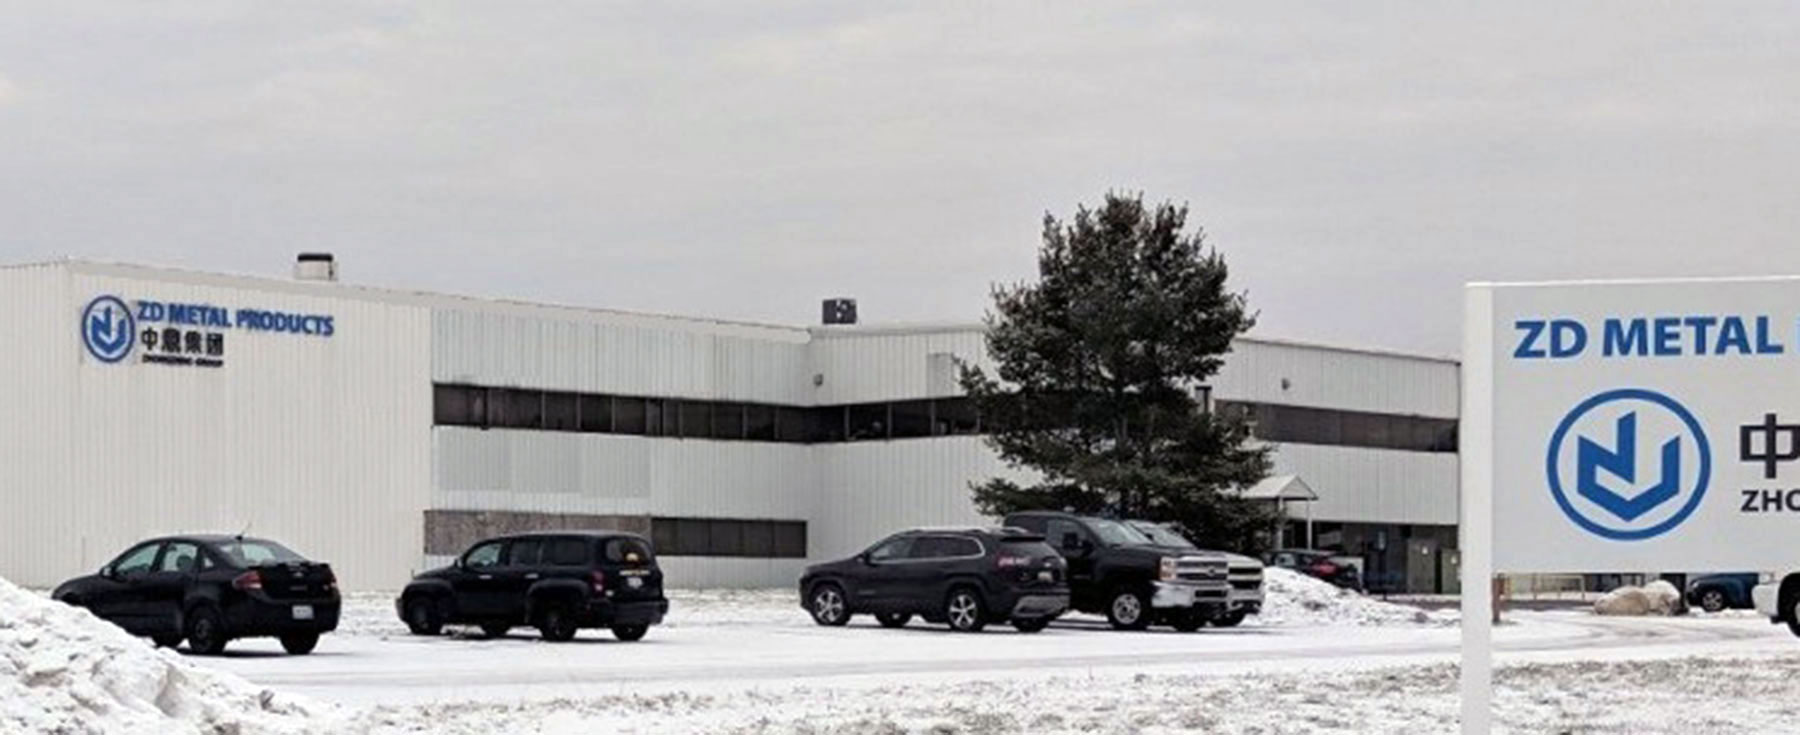 ZD Metal Products Manufacturing Petoskey